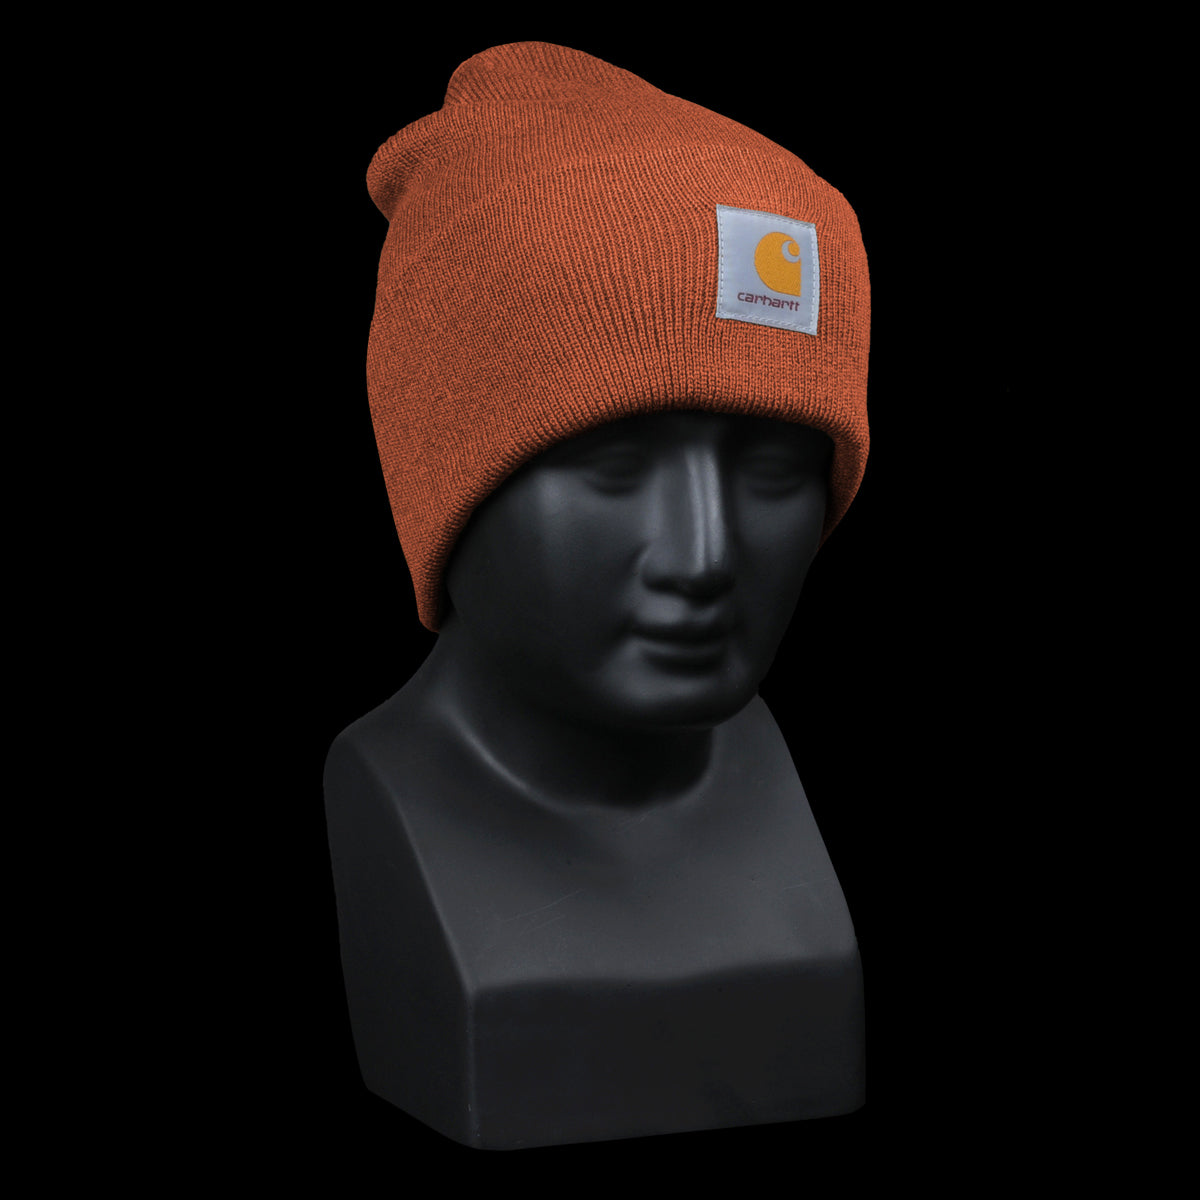 5542076b726 Carhartt Wip - Acrylic Watch Hat in Persimmon - UNIONMADE